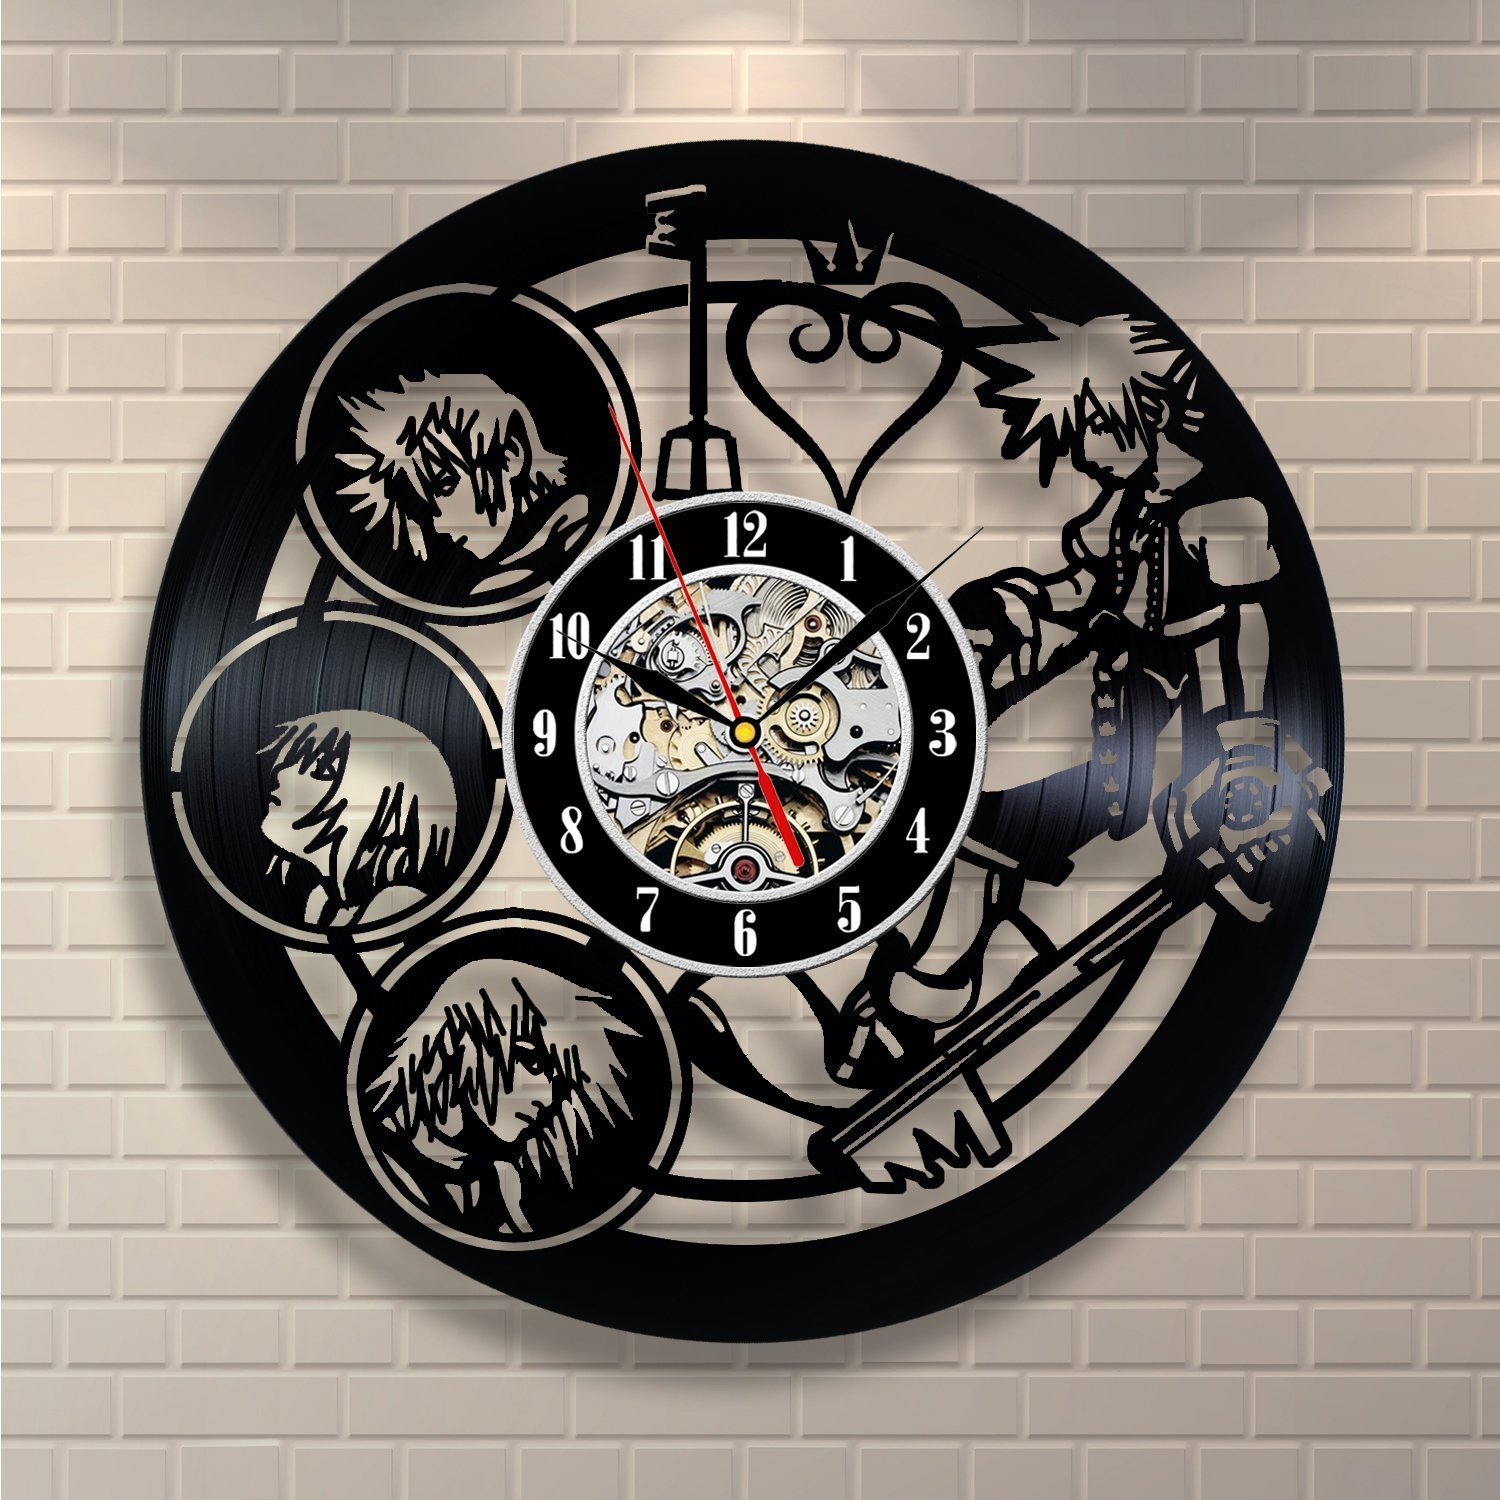 Shop amazon wall clocks kingdom hearts anime vinyl record design wall clock decorate your home with modern kingdom hearts amipublicfo Images